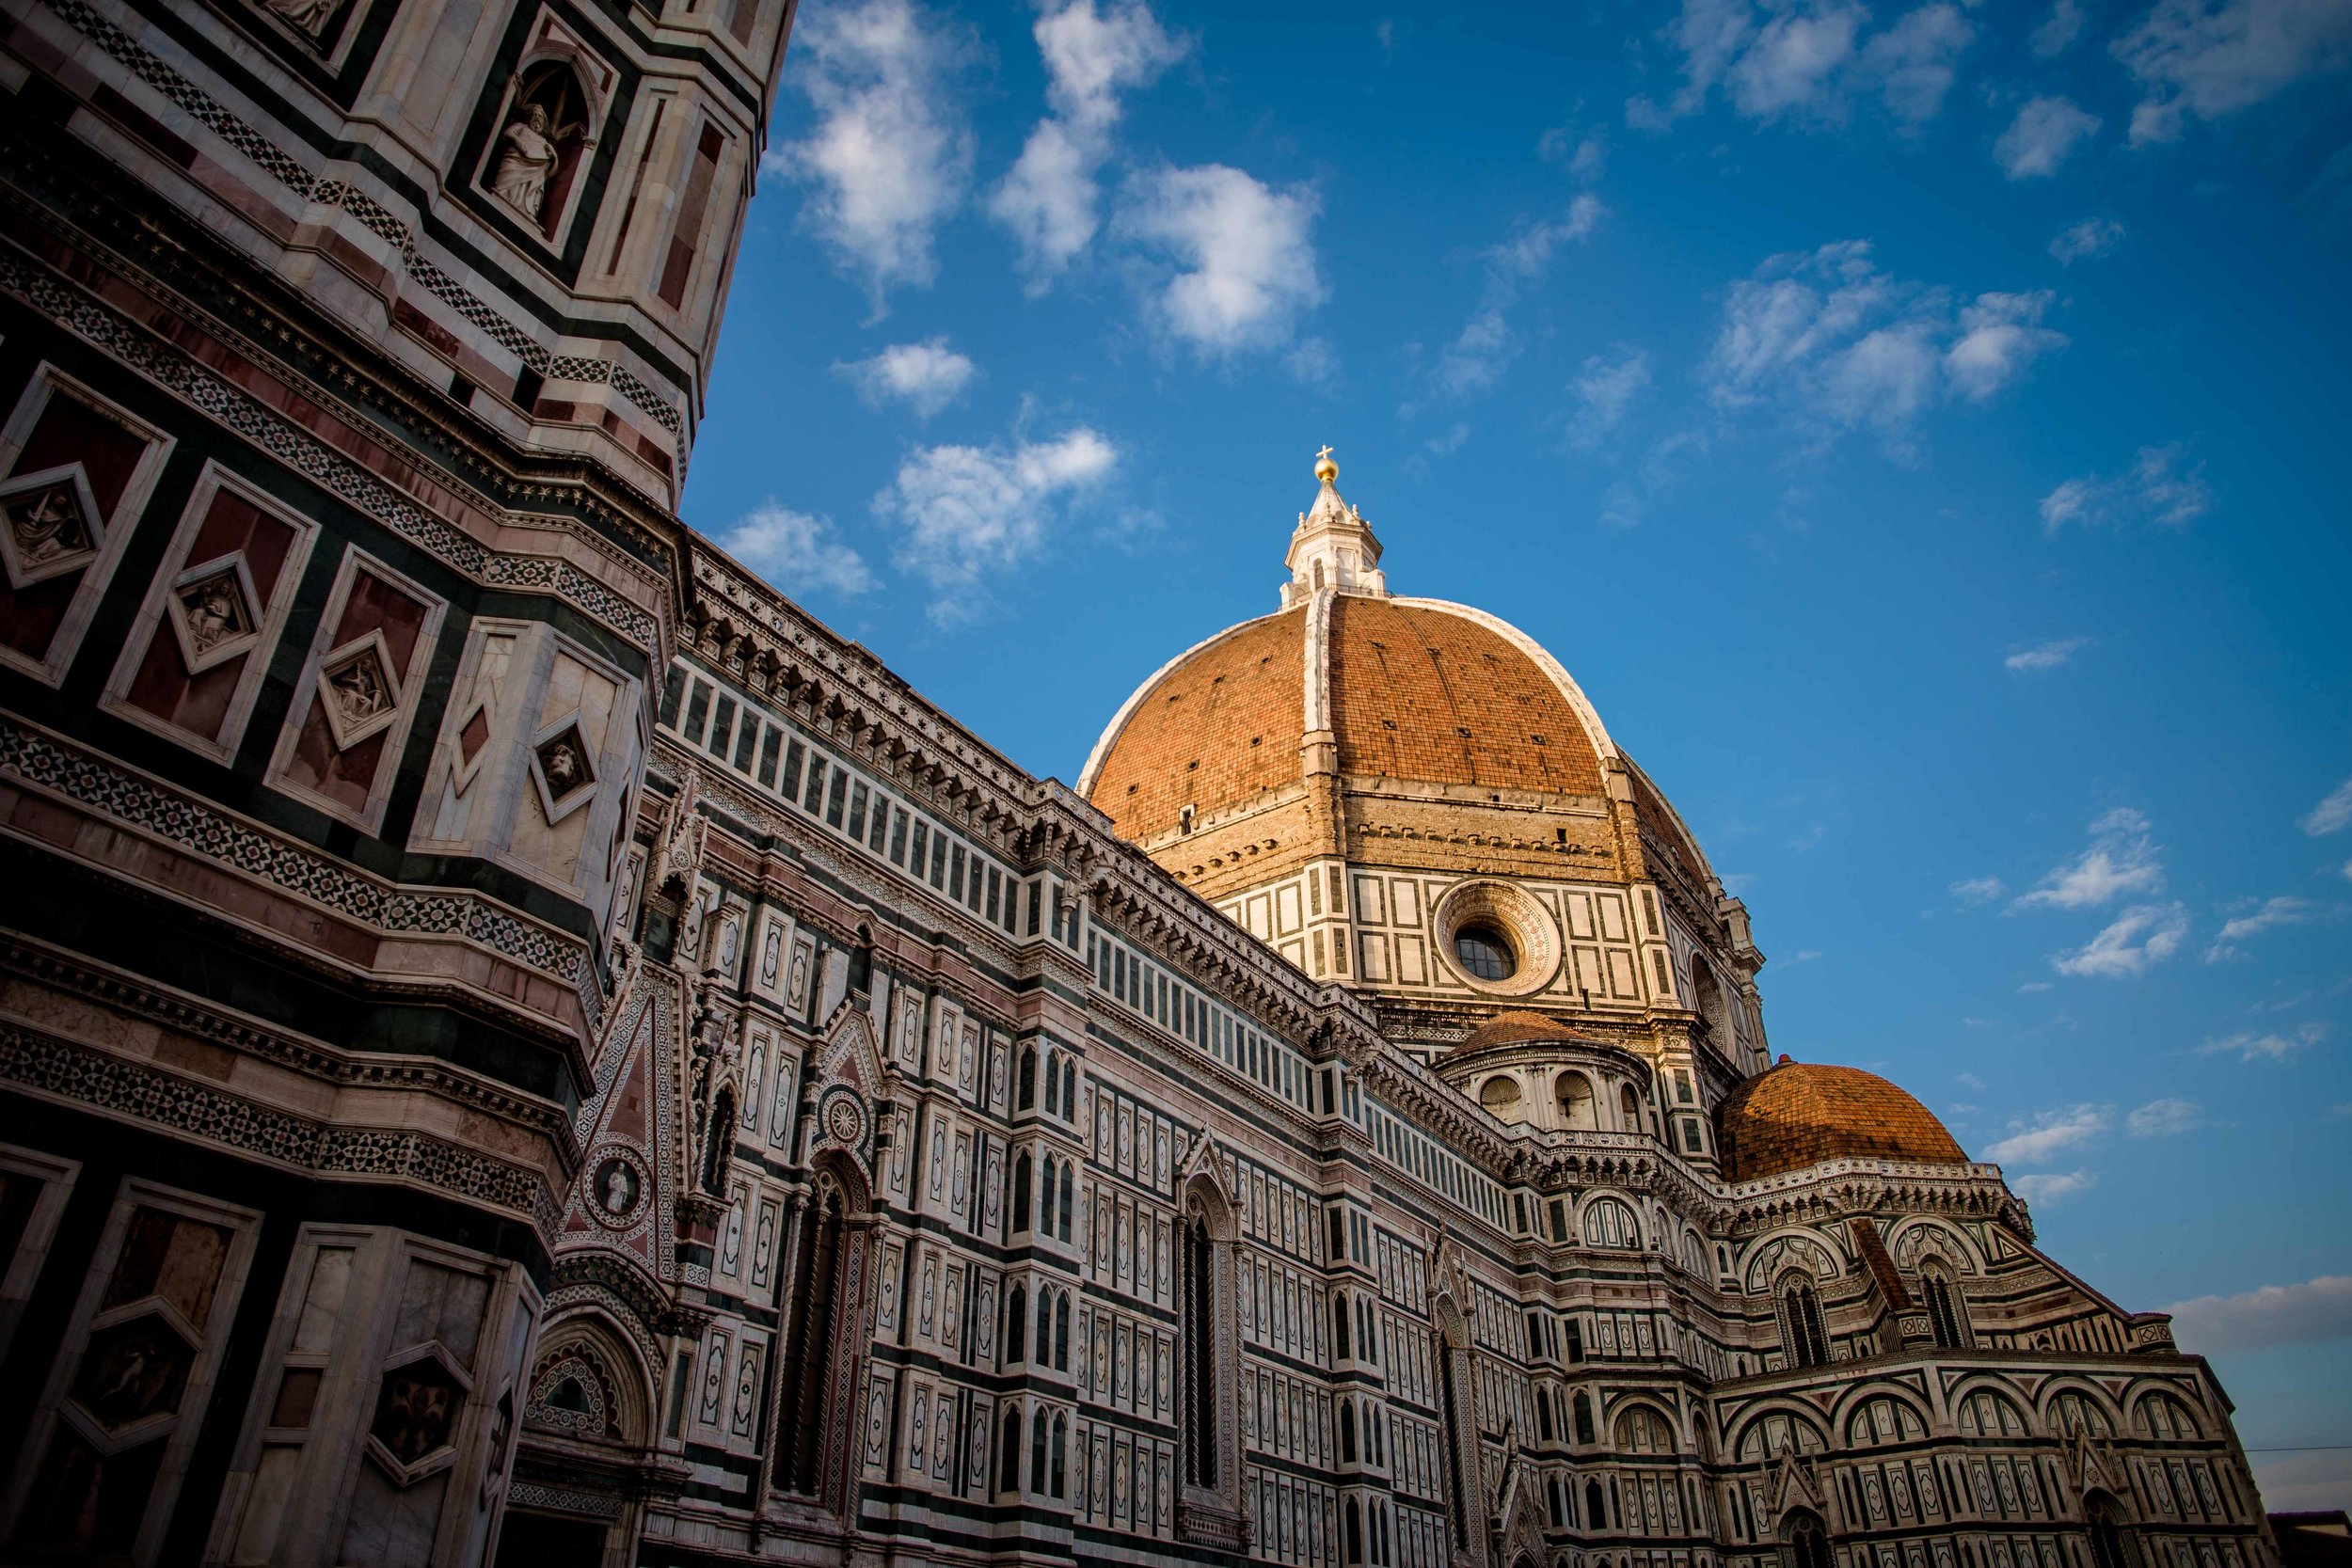 We went to Italy on our honeymoon. It was my first experience with international travel. Something about that experience got me hooked.